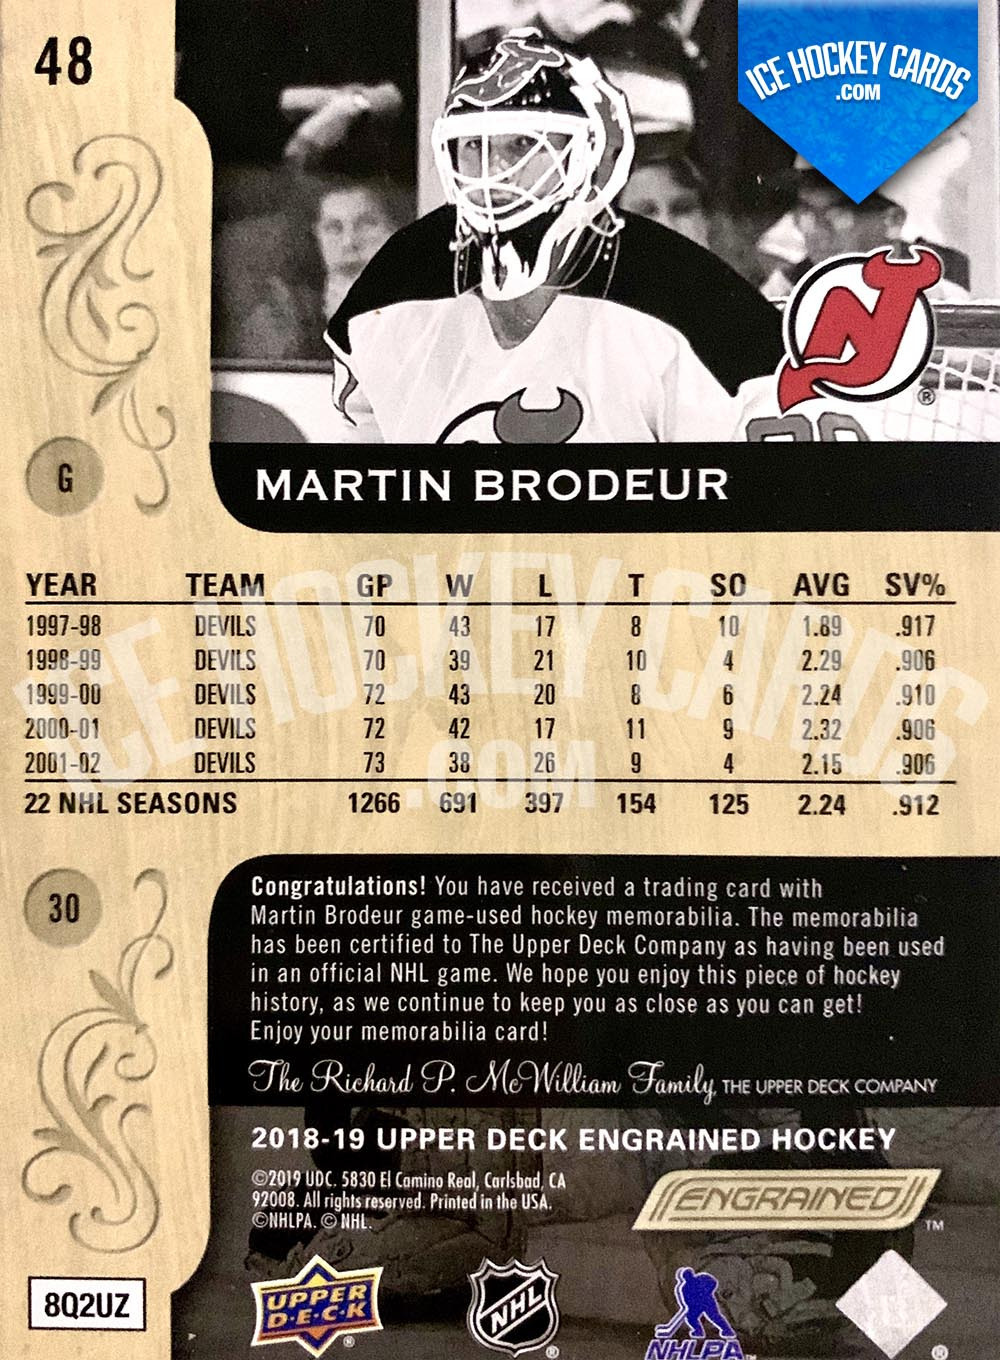 Upper Deck - Engrained 2018-19 - Martin Brodeur Patch Card # to 10 RARE back